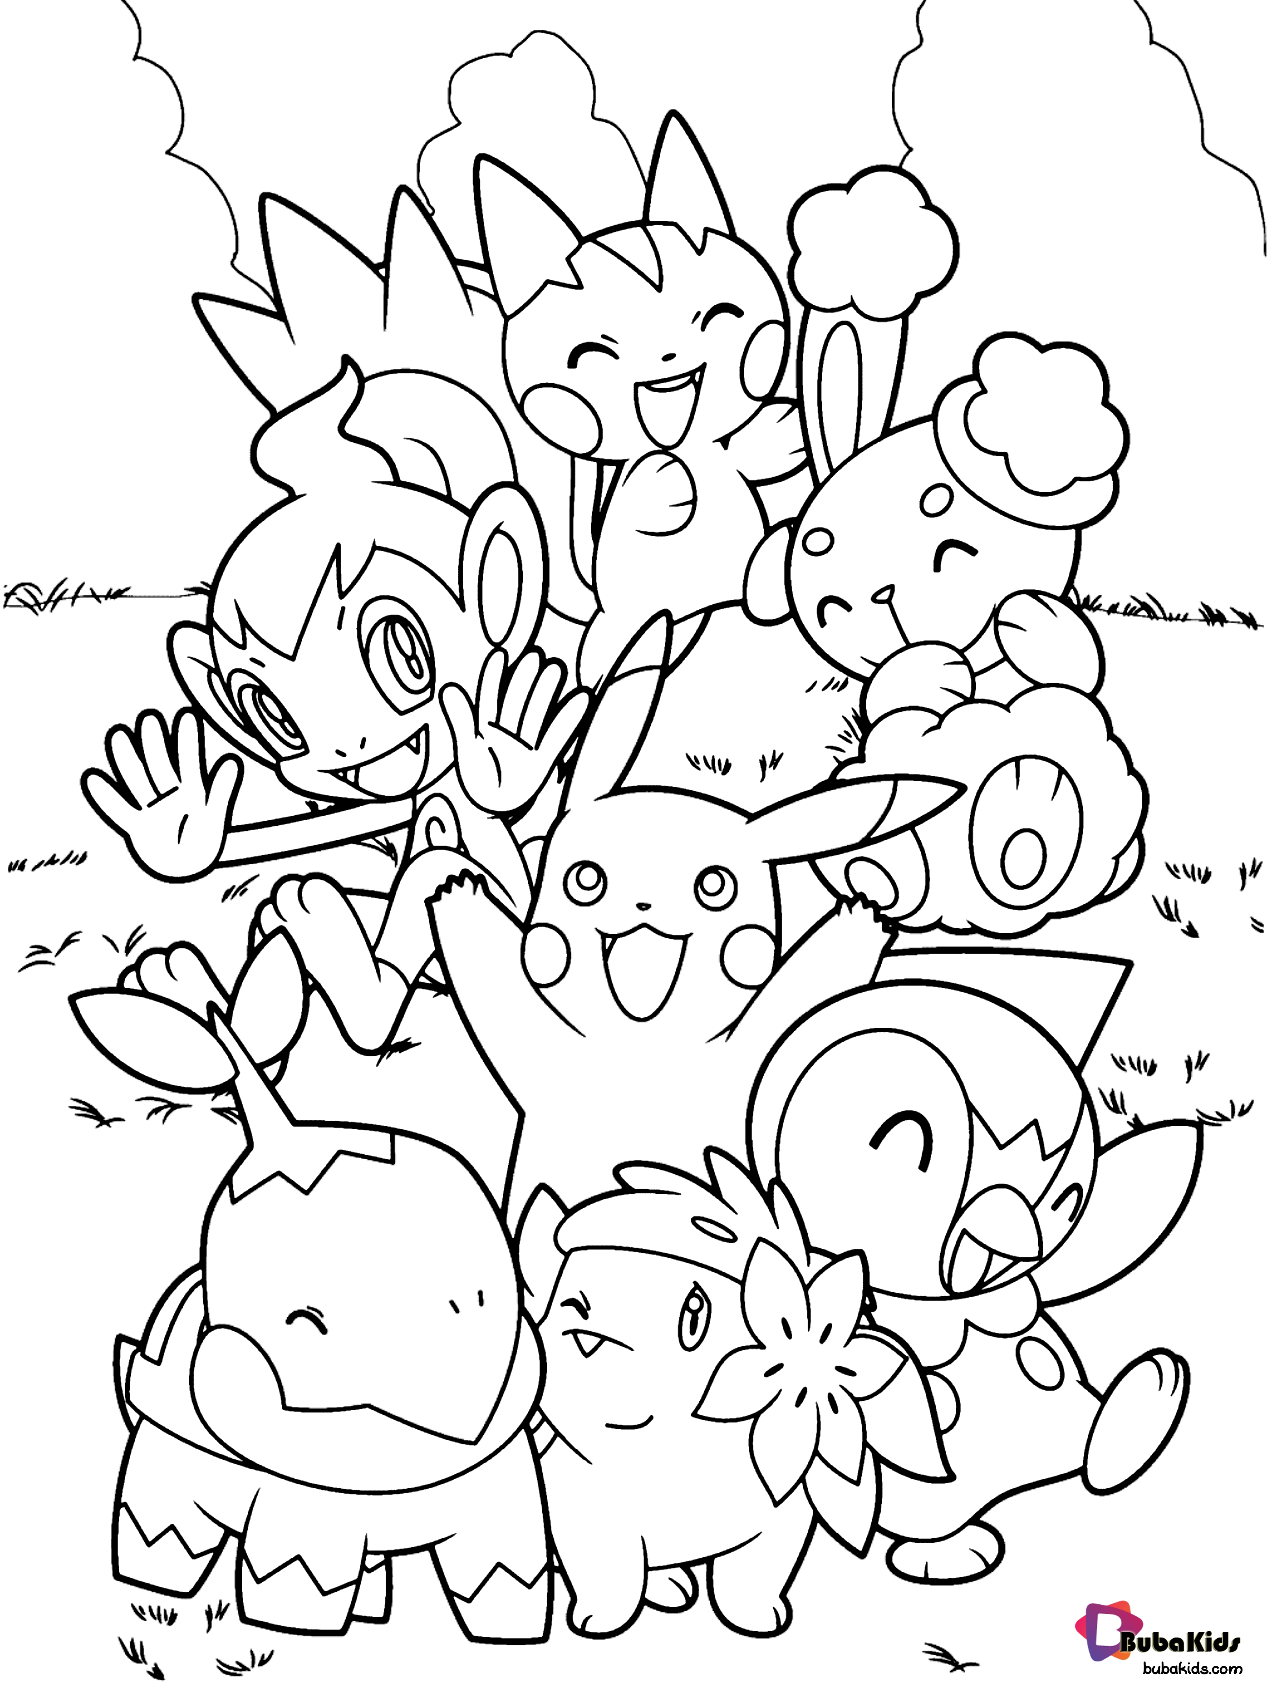 All Pokemon Printable Coloring Page Collection Of Cartoon Coloring Pages For Teenage Printable Tha In 2020 Pokemon Coloring Pages Fall Coloring Pages Pokemon Coloring